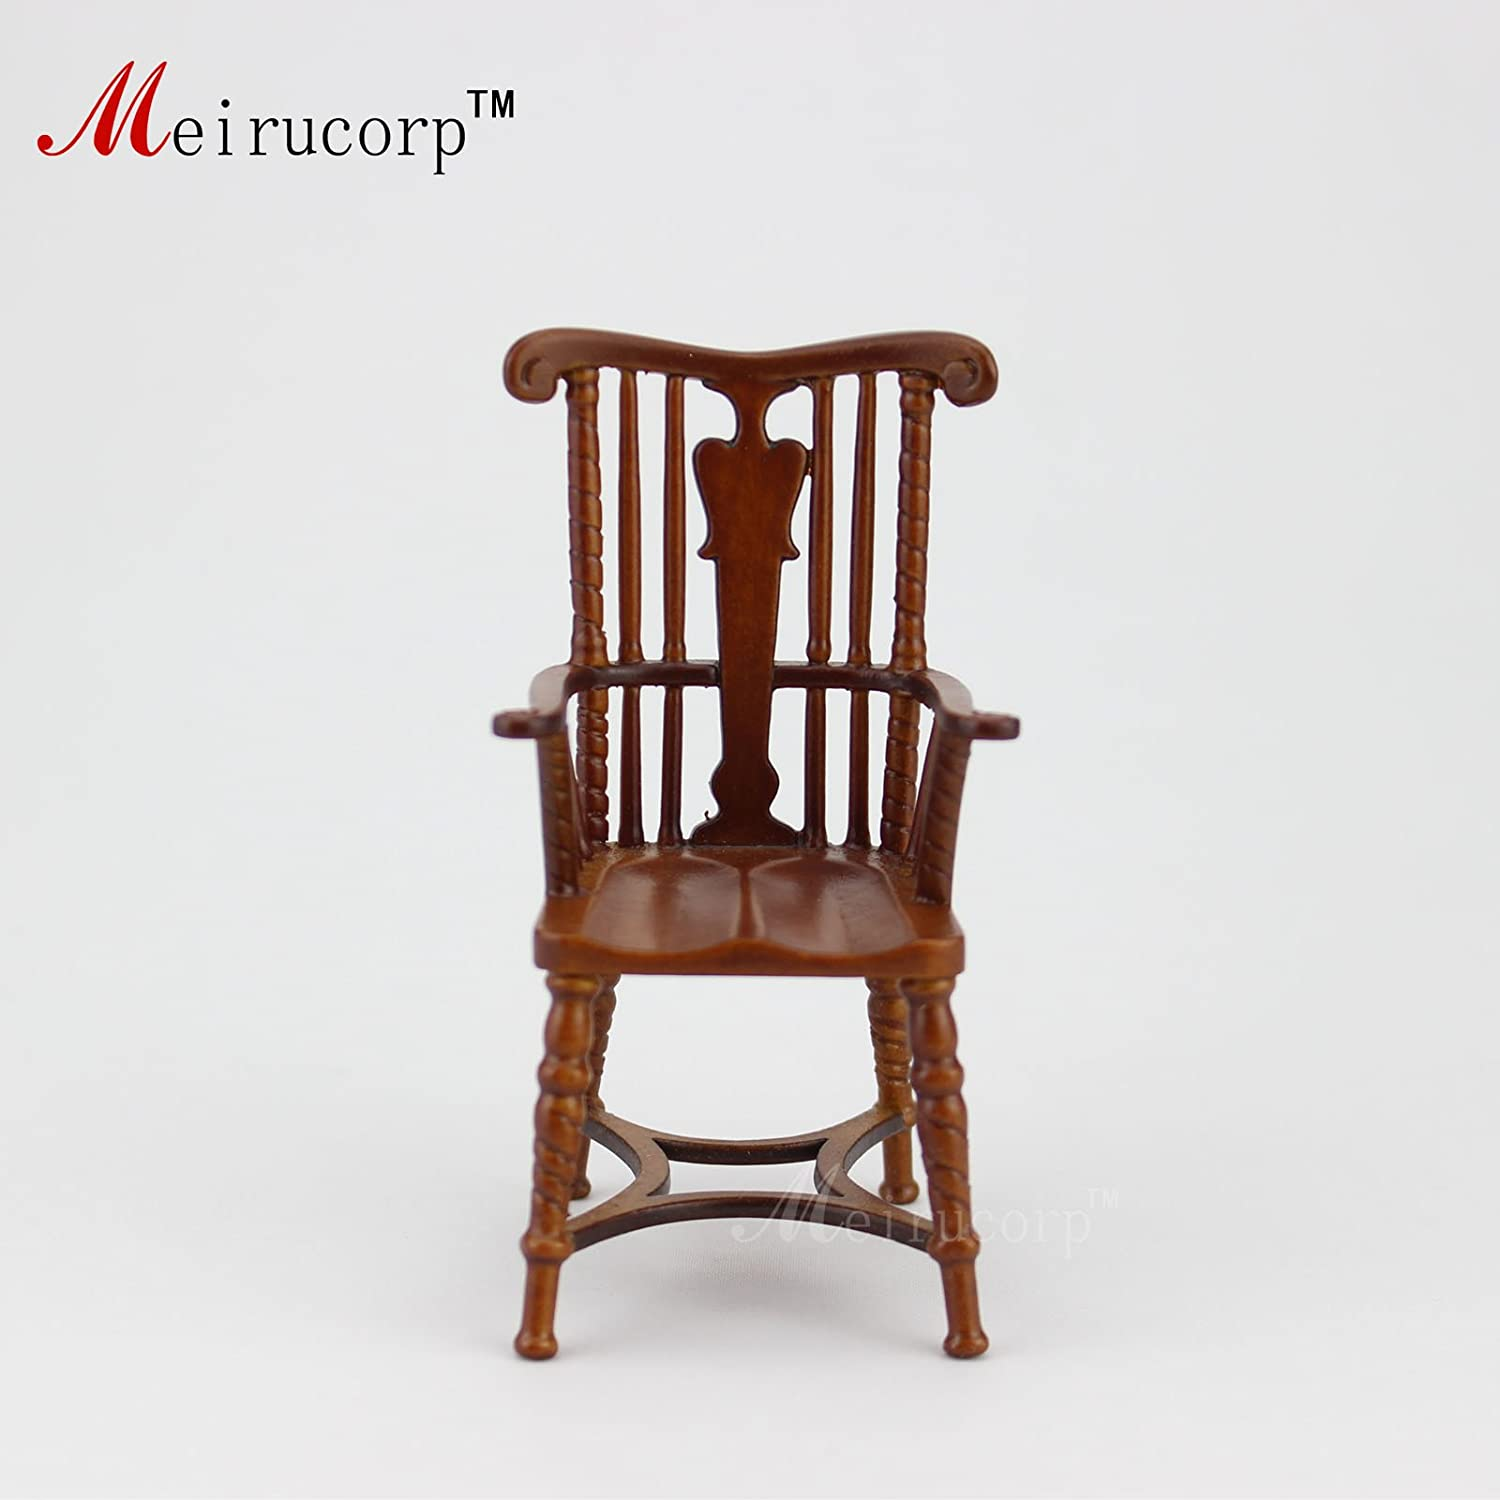 Meirucorp Dollhouse 1:12 Scale Miniature Furniture Wood Armchair 10322